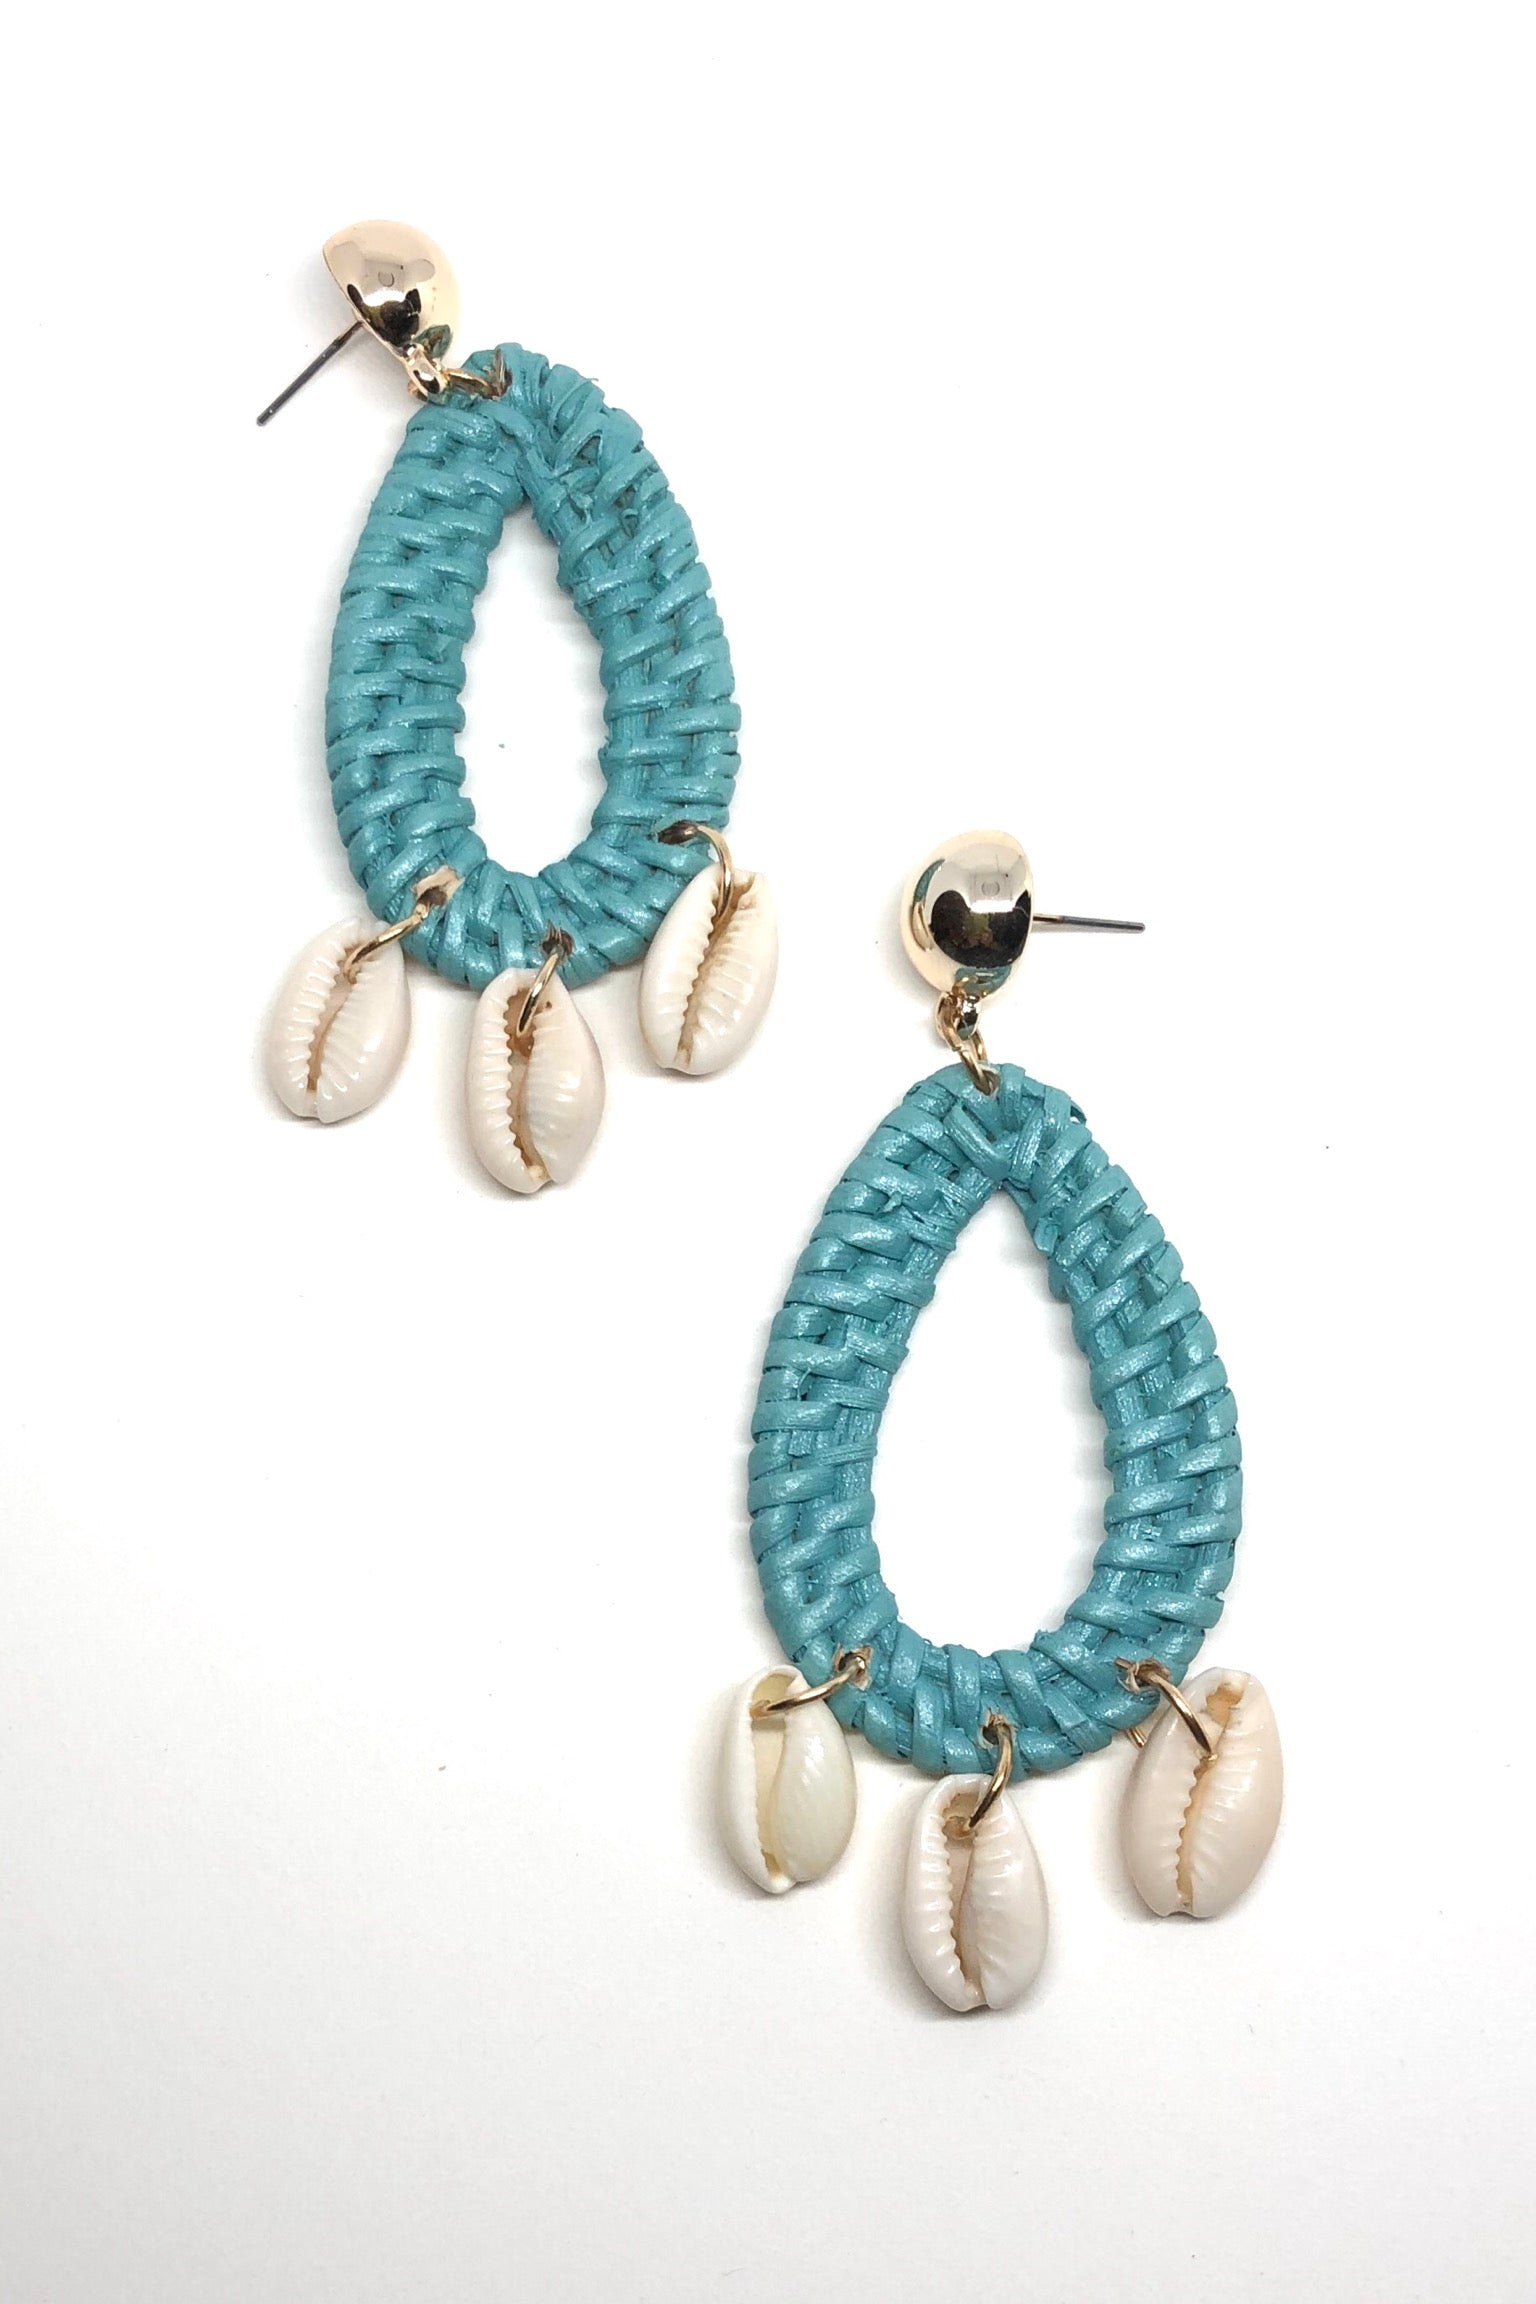 statement drop earrings with hanging cowrie shells